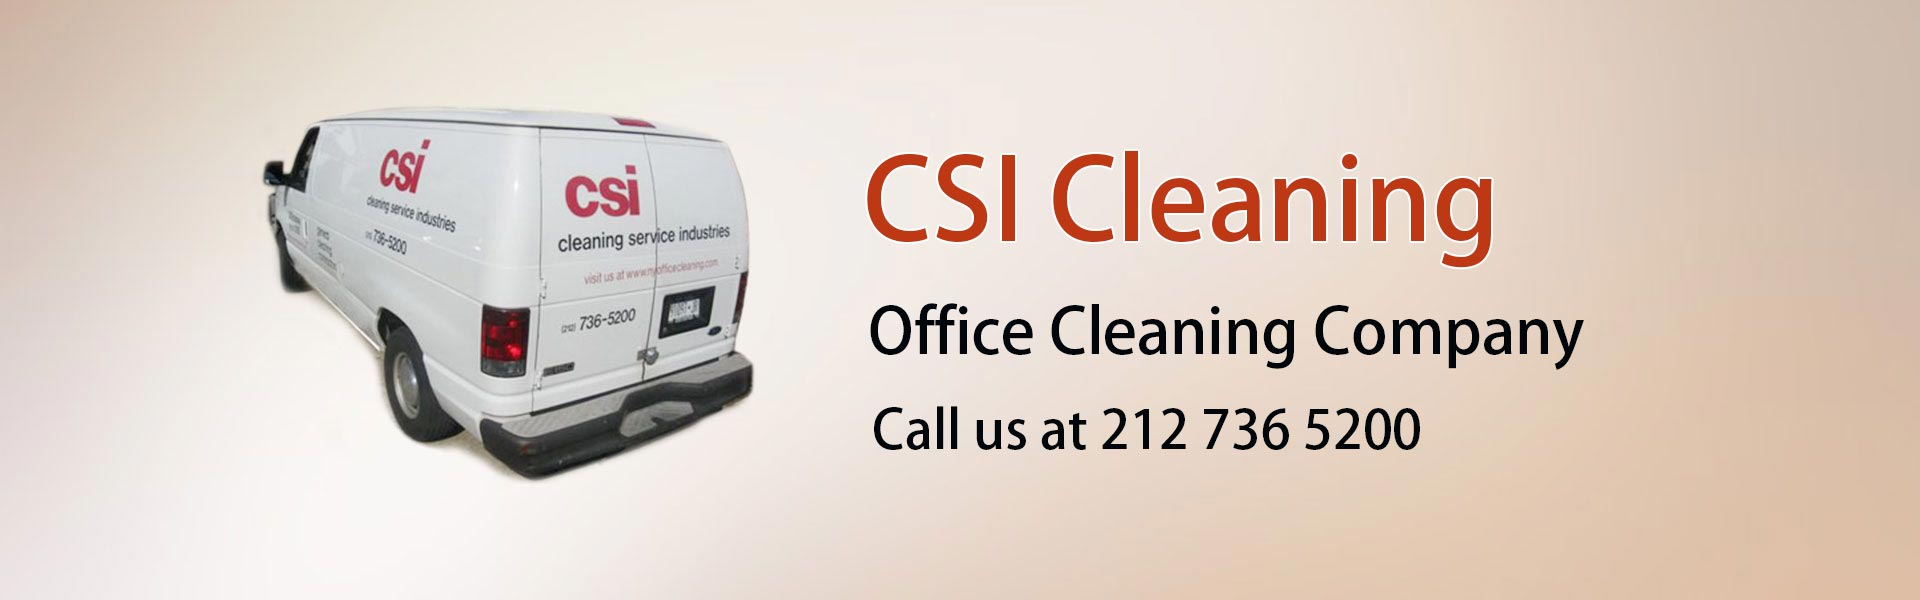 Office Cleaning Company New York